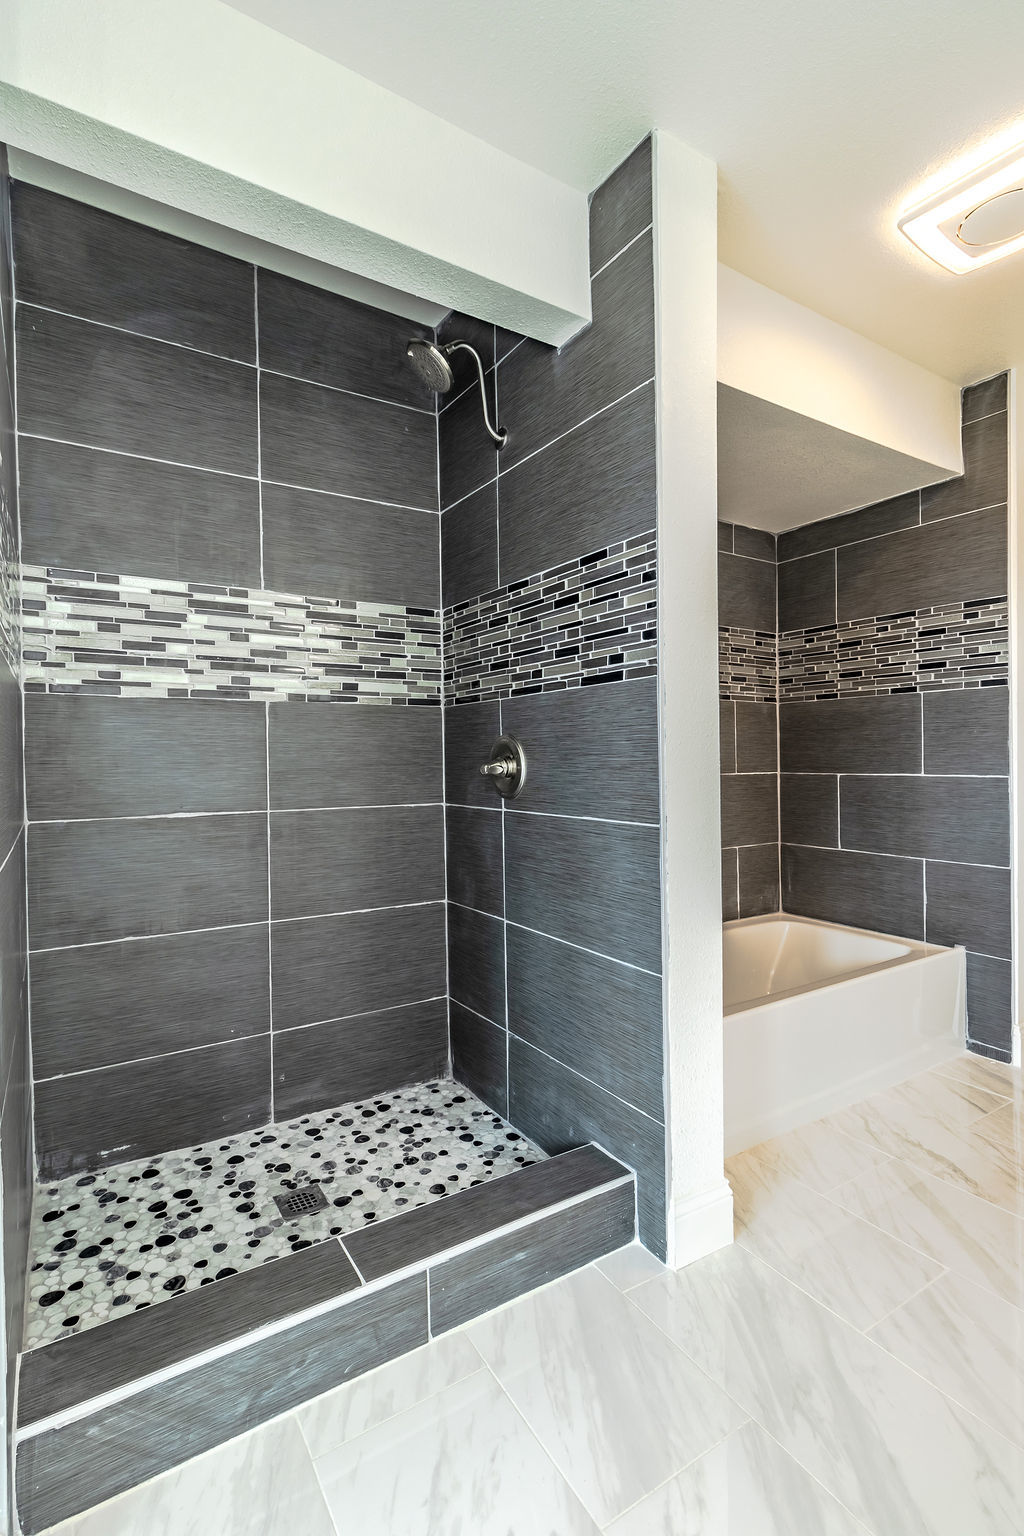 Apple Valley property photo of master bathroom with walk-in shower and tub